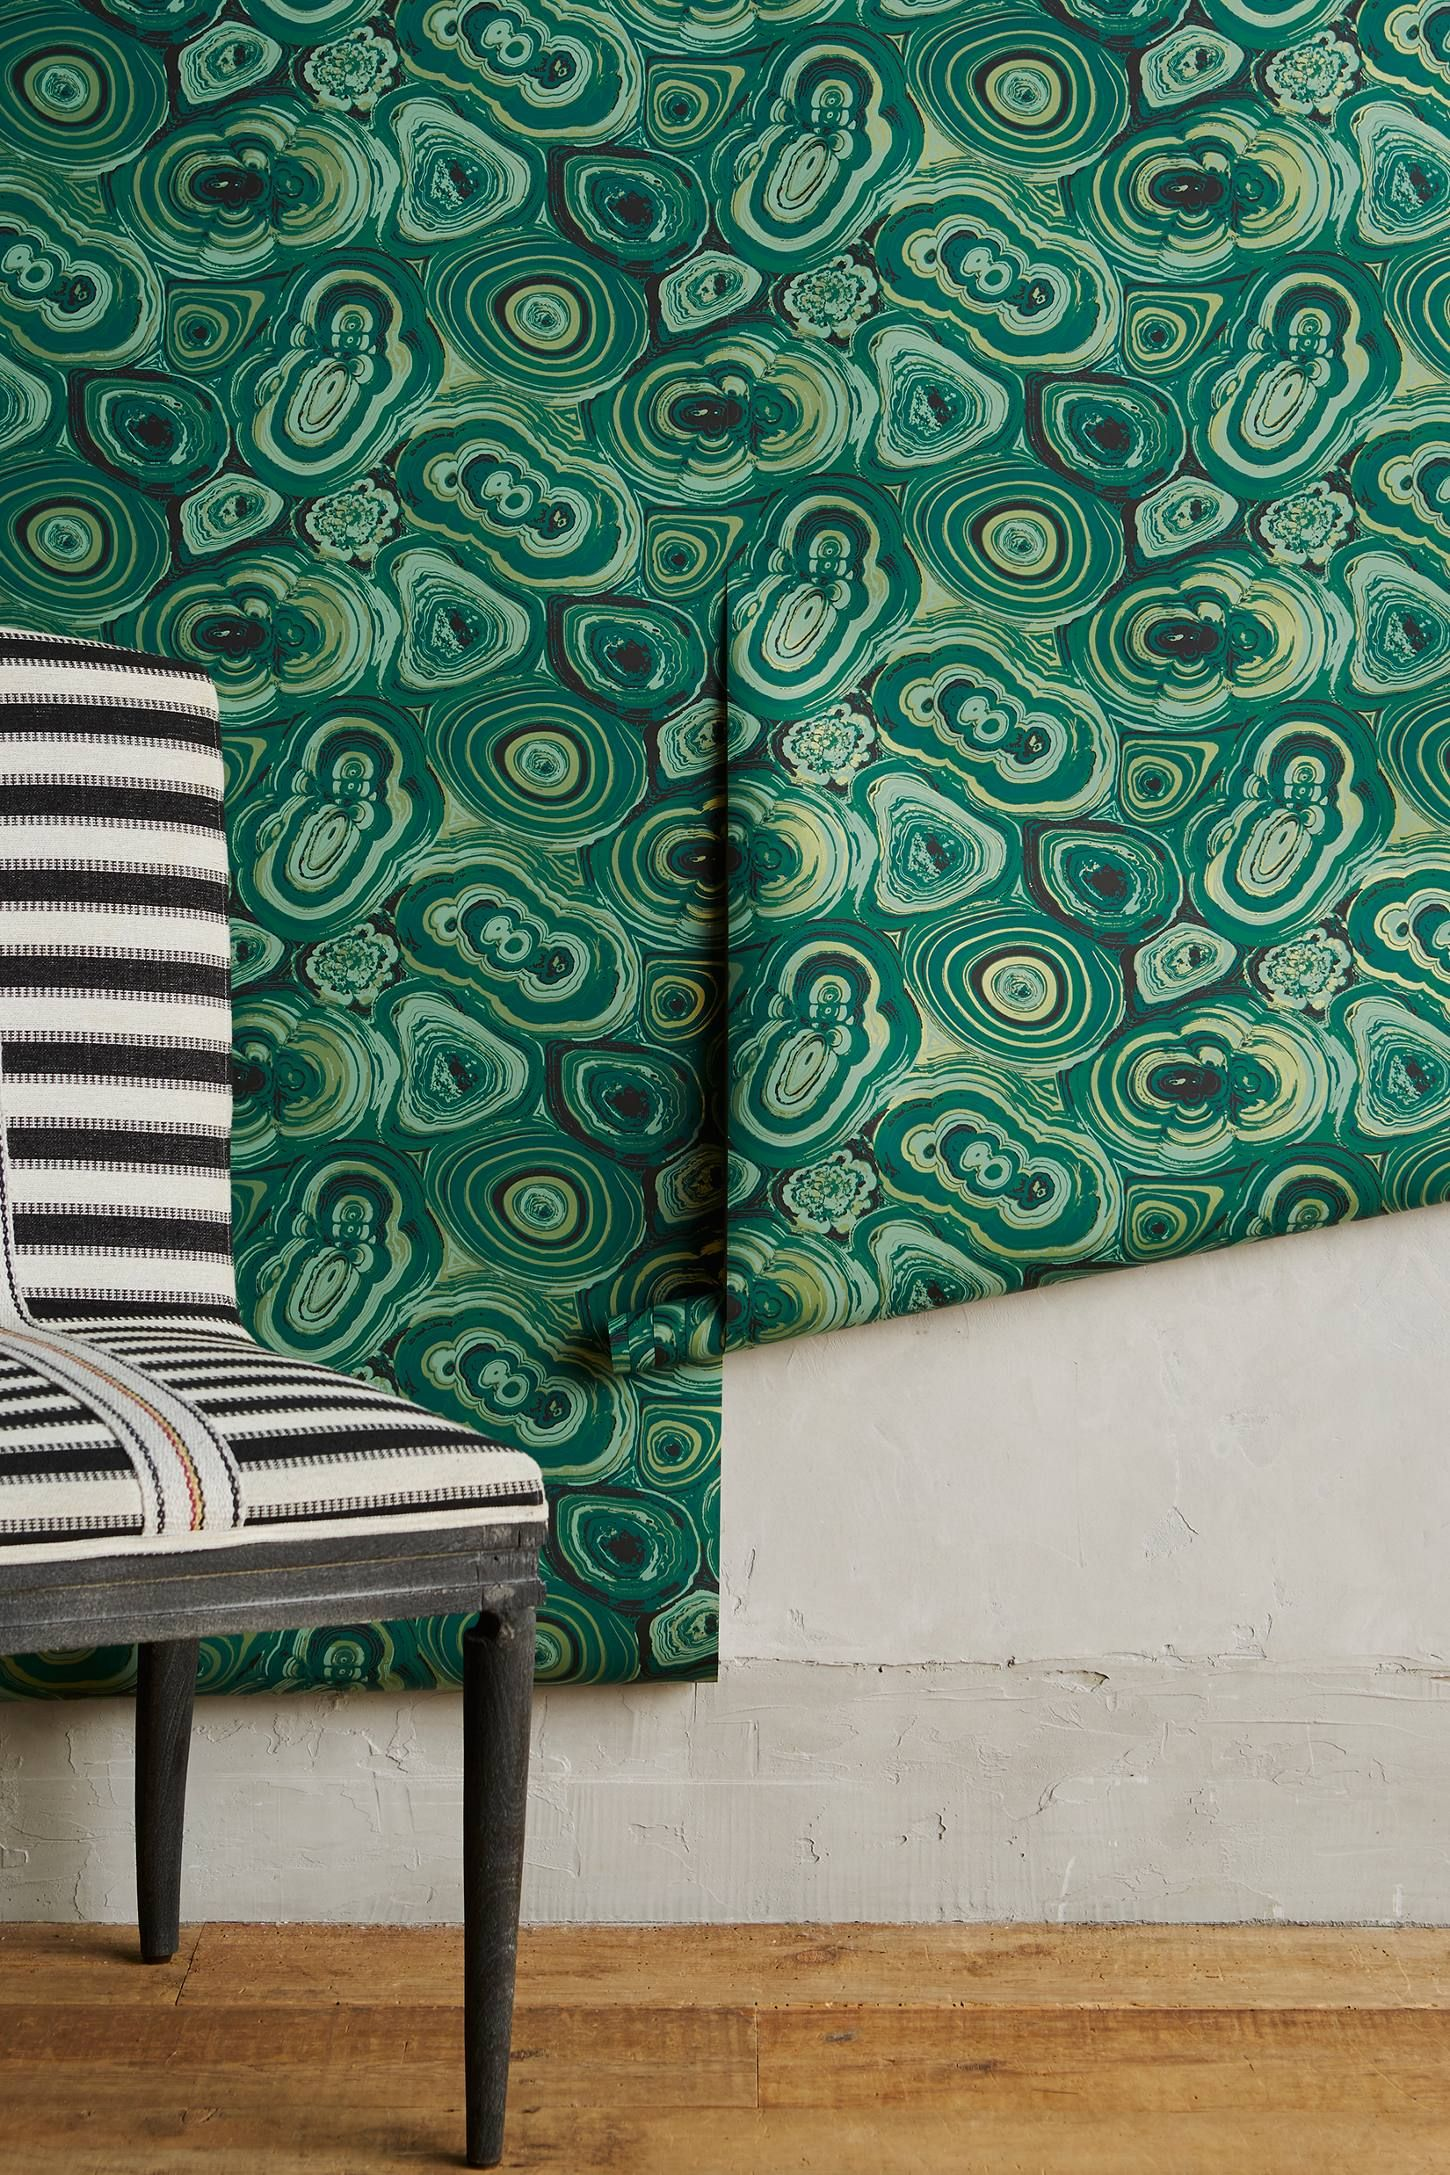 malachite wallpaper en 2018 green vert pinterest decoration deco et tableau. Black Bedroom Furniture Sets. Home Design Ideas